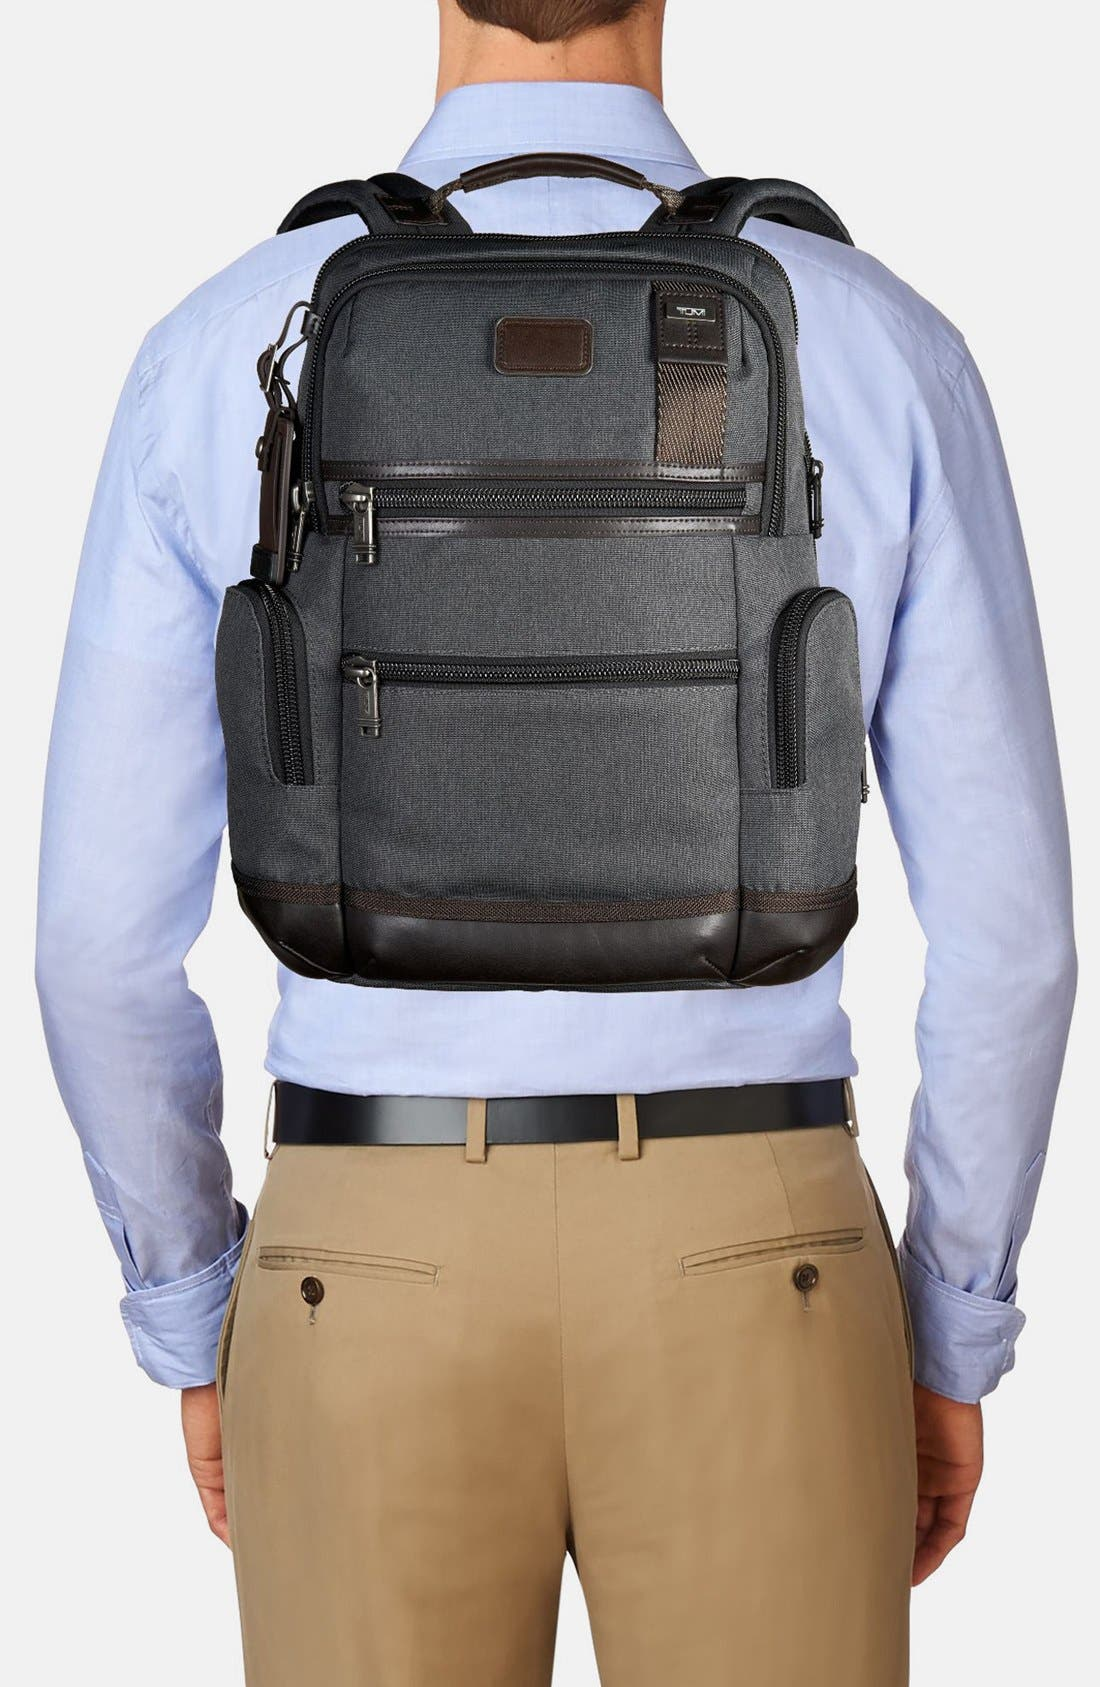 Alpha Bravo - Knox Backpack,                             Alternate thumbnail 4, color,                             020